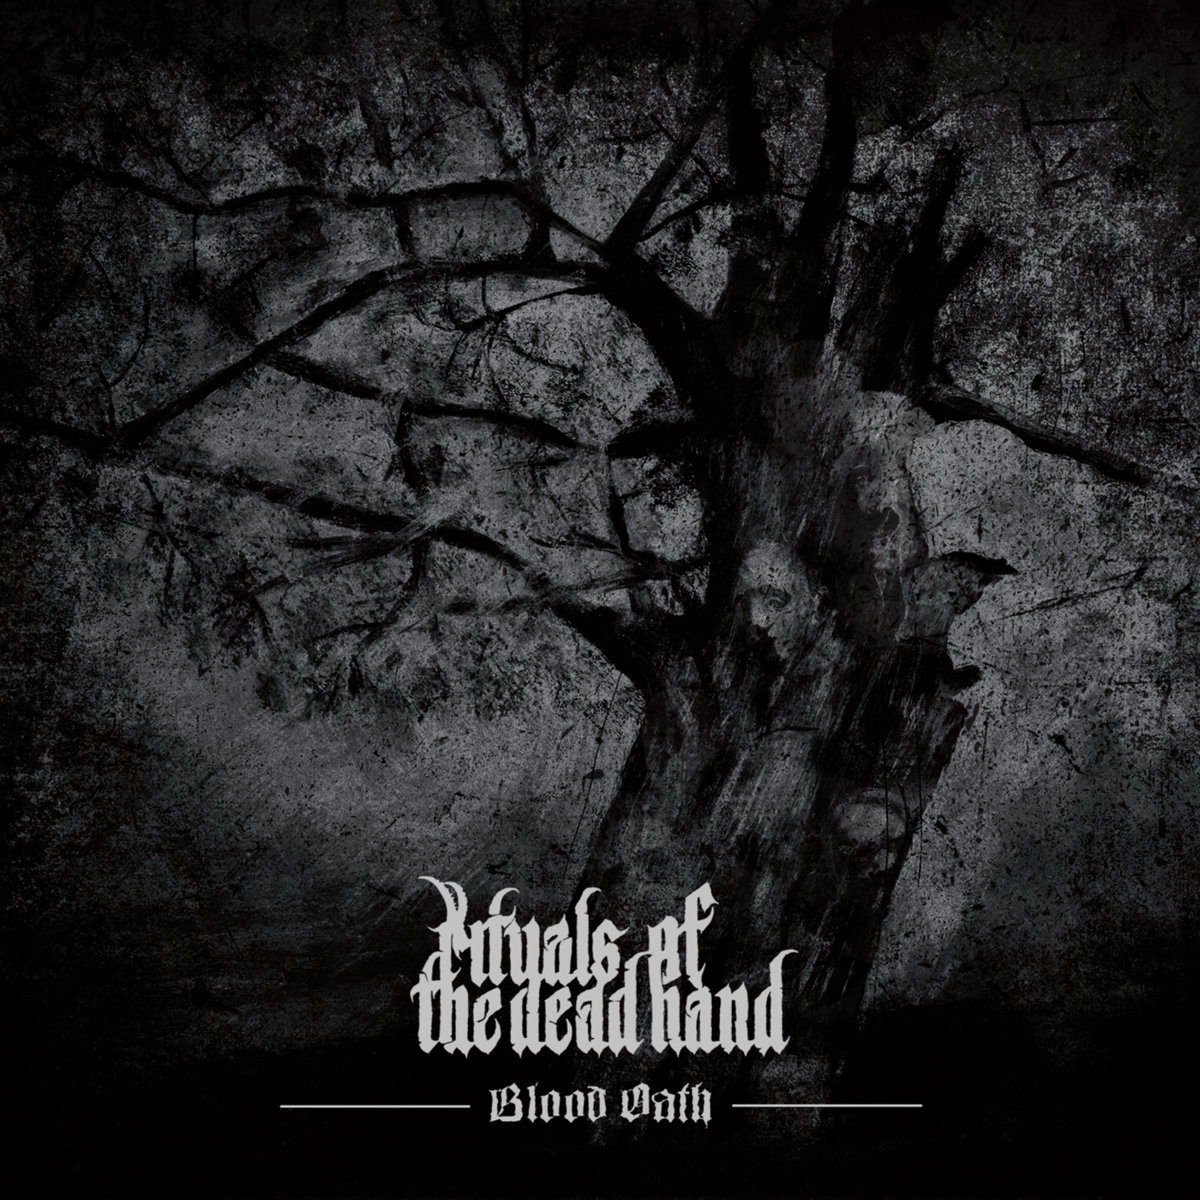 rituals of the dead hand – blood oath